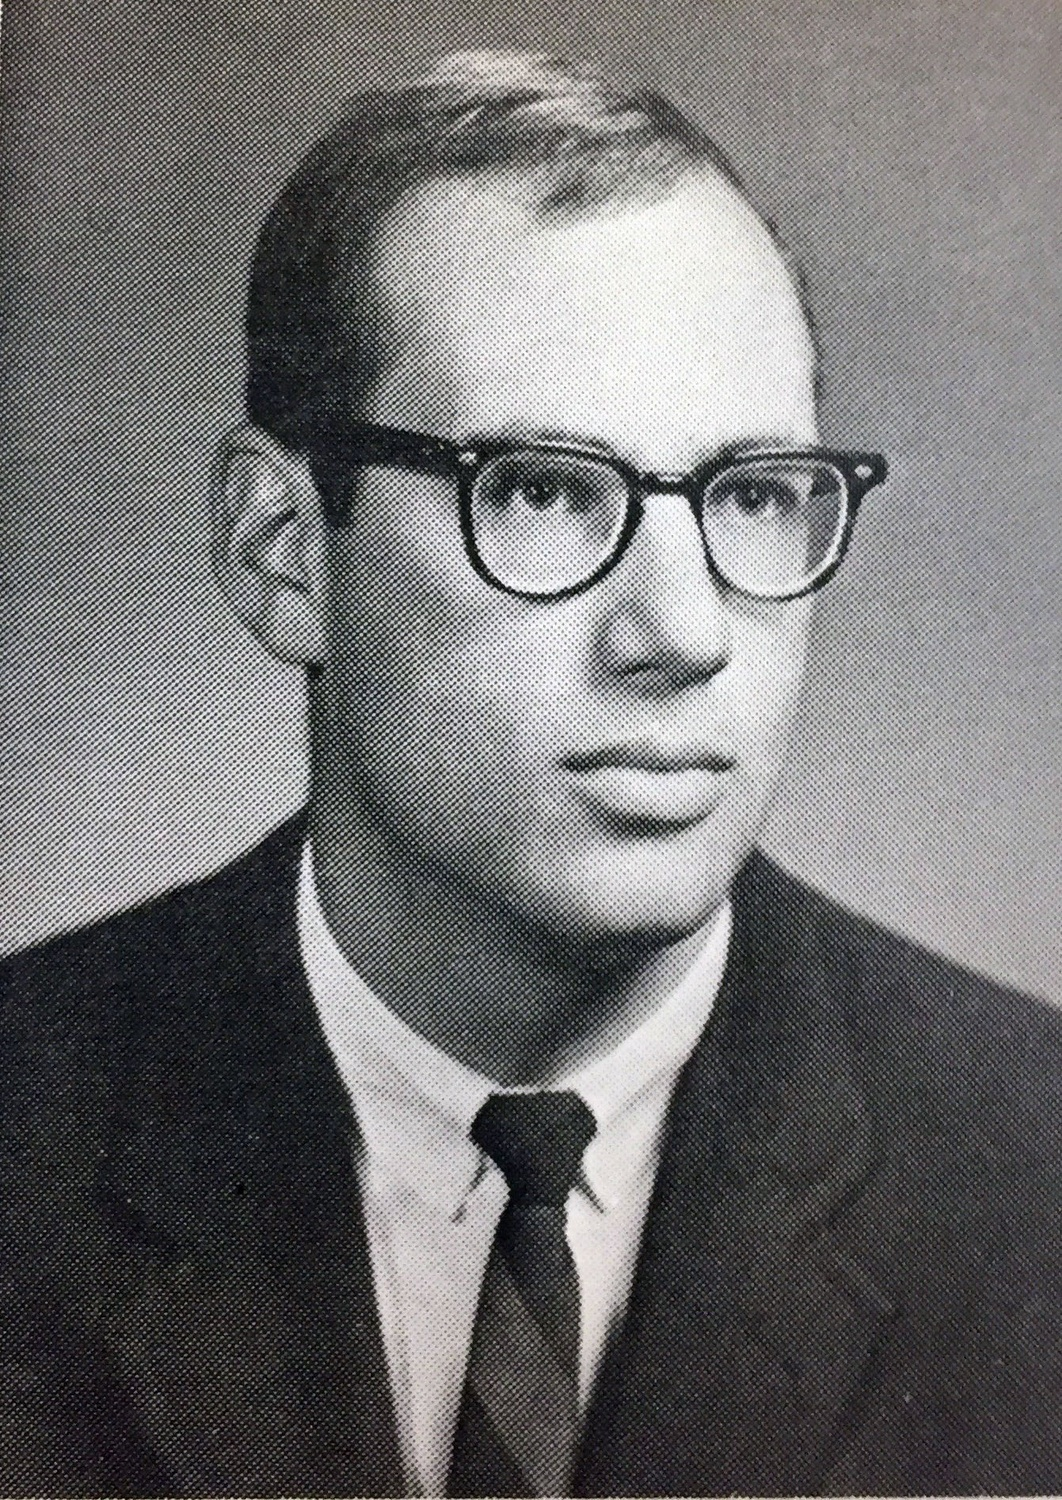 Stephen Joseph Bergman '66 is pictured during his senior year at the College, where he was a member of Leverett House. He is now a professor of psychiatry at Harvard Medical School and a famous writer under the pen name Samuel Shem.